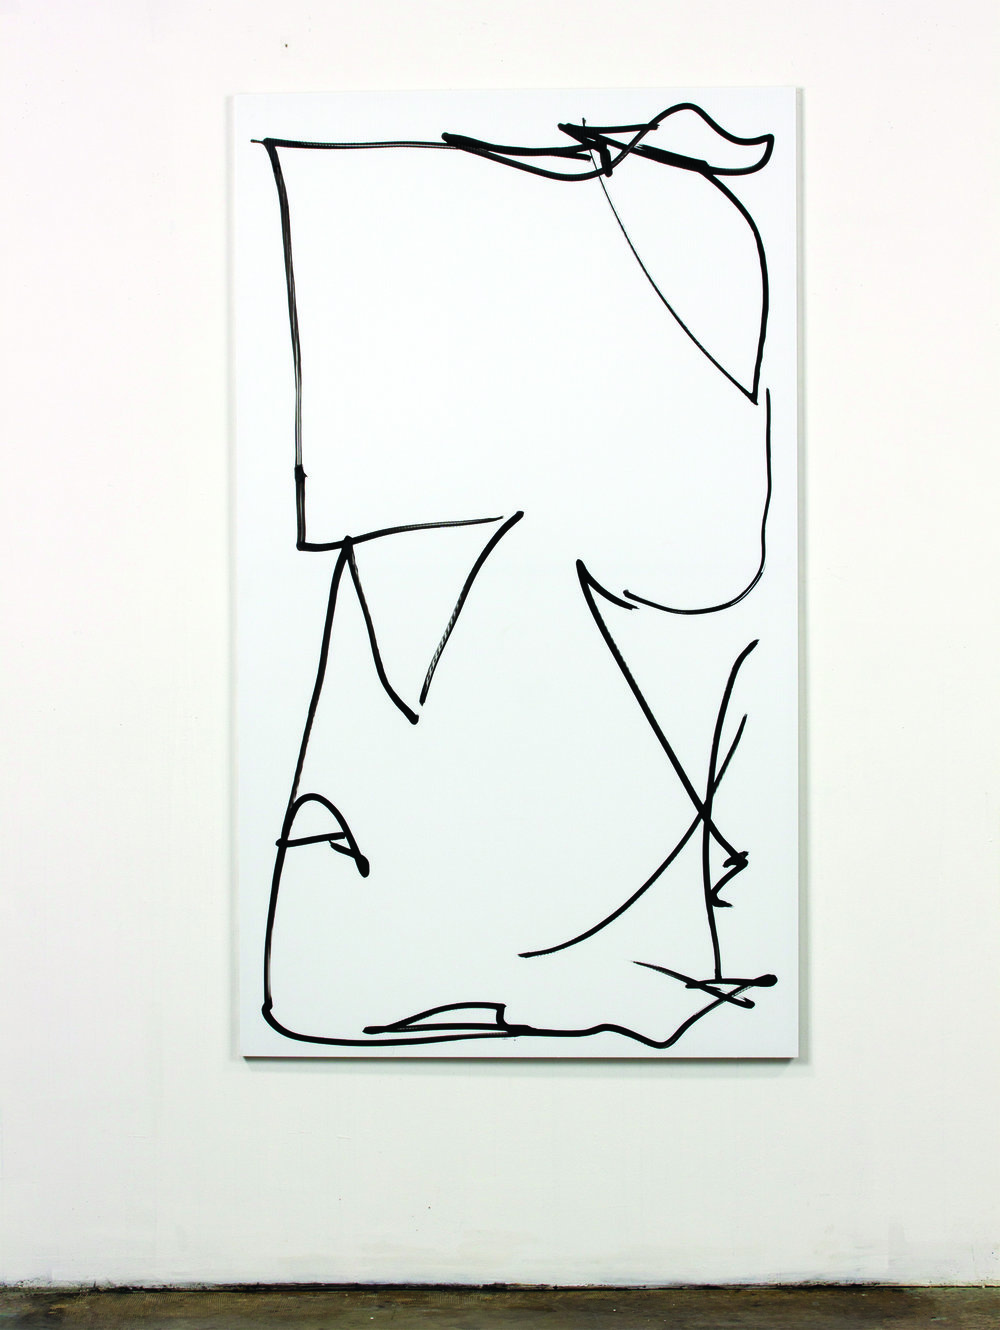 Grove, 2013, ink on fluted polyboard mounted on an aluminum frame, 70 x 40 1/2 inches